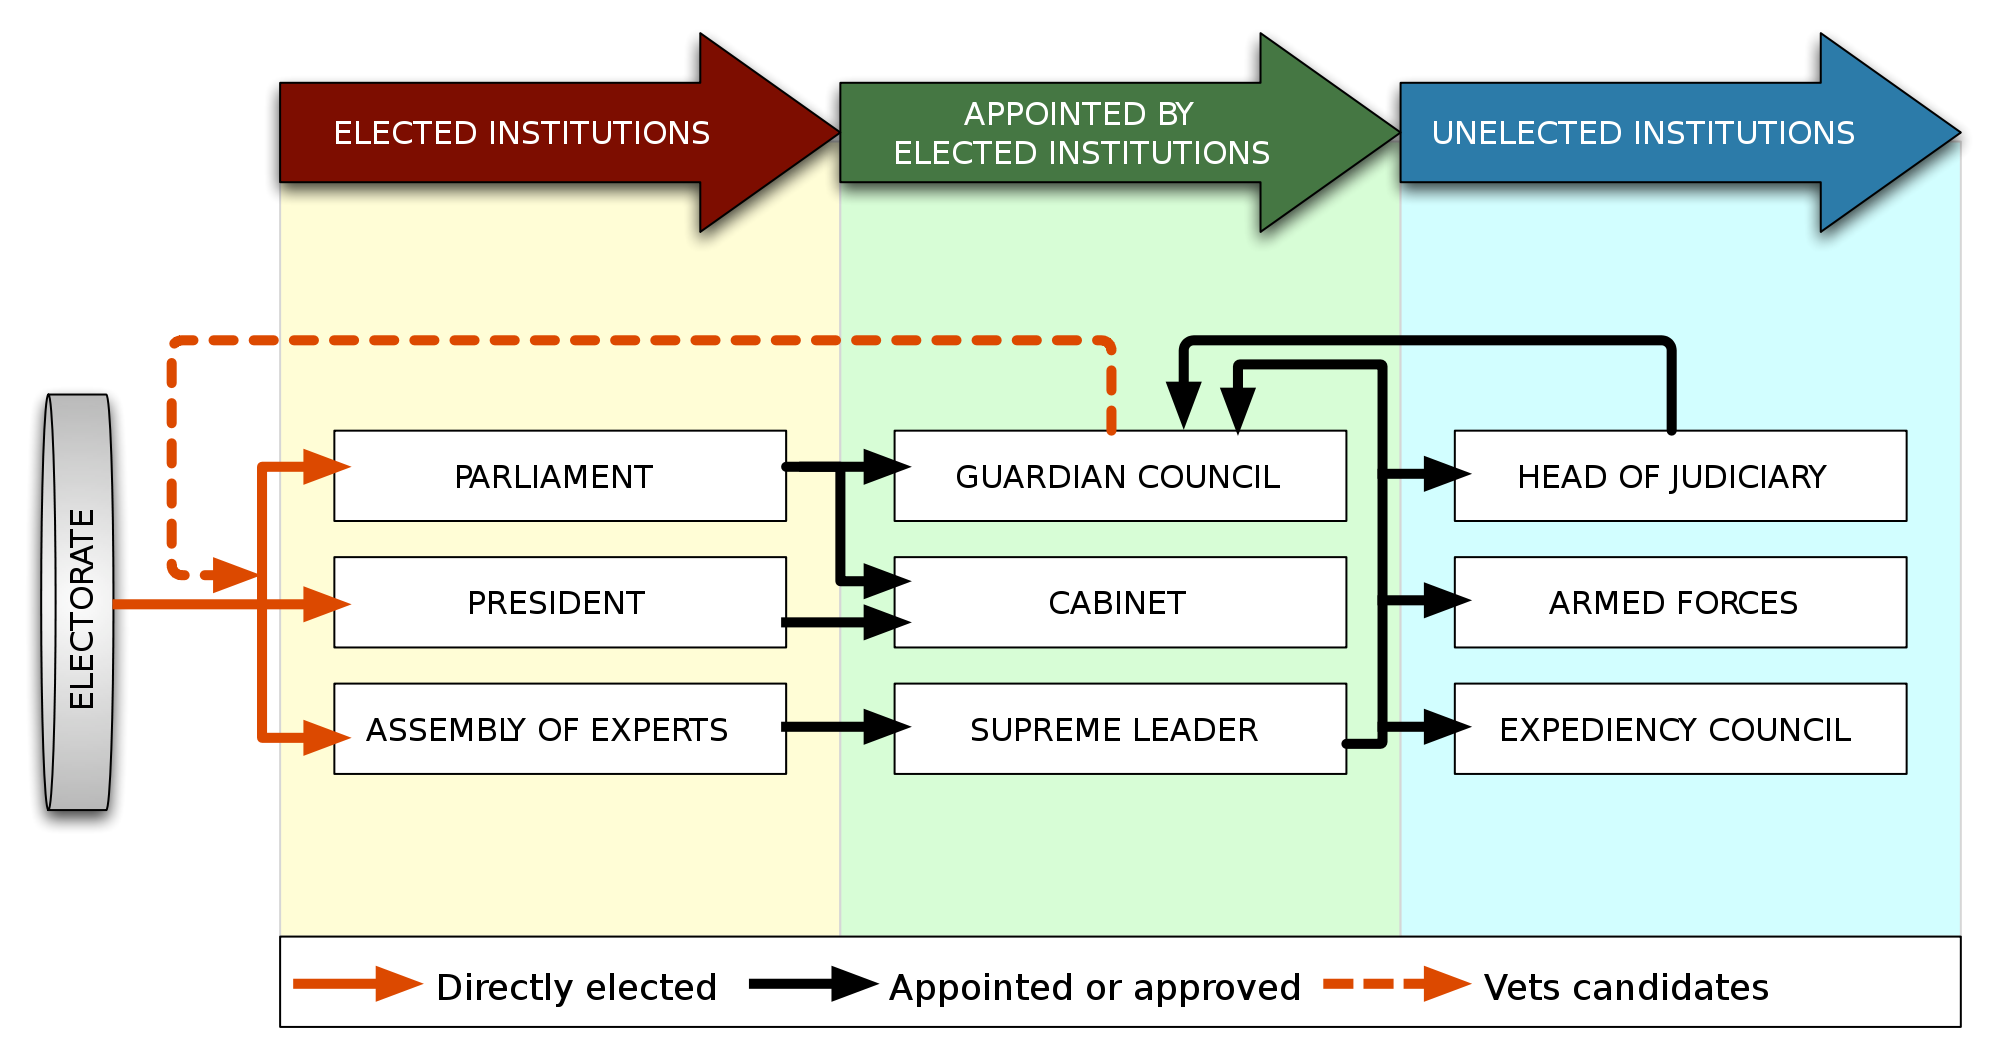 an overview of the presidentialism in the democratic society of the untied states Presidentialism and parliamentarism are two major forms of democratic government systems nearly all political systems in the world are modeled on them (mahler, 2000) the former is best respresented by the united states while the latter one is represented by the united kingdom.